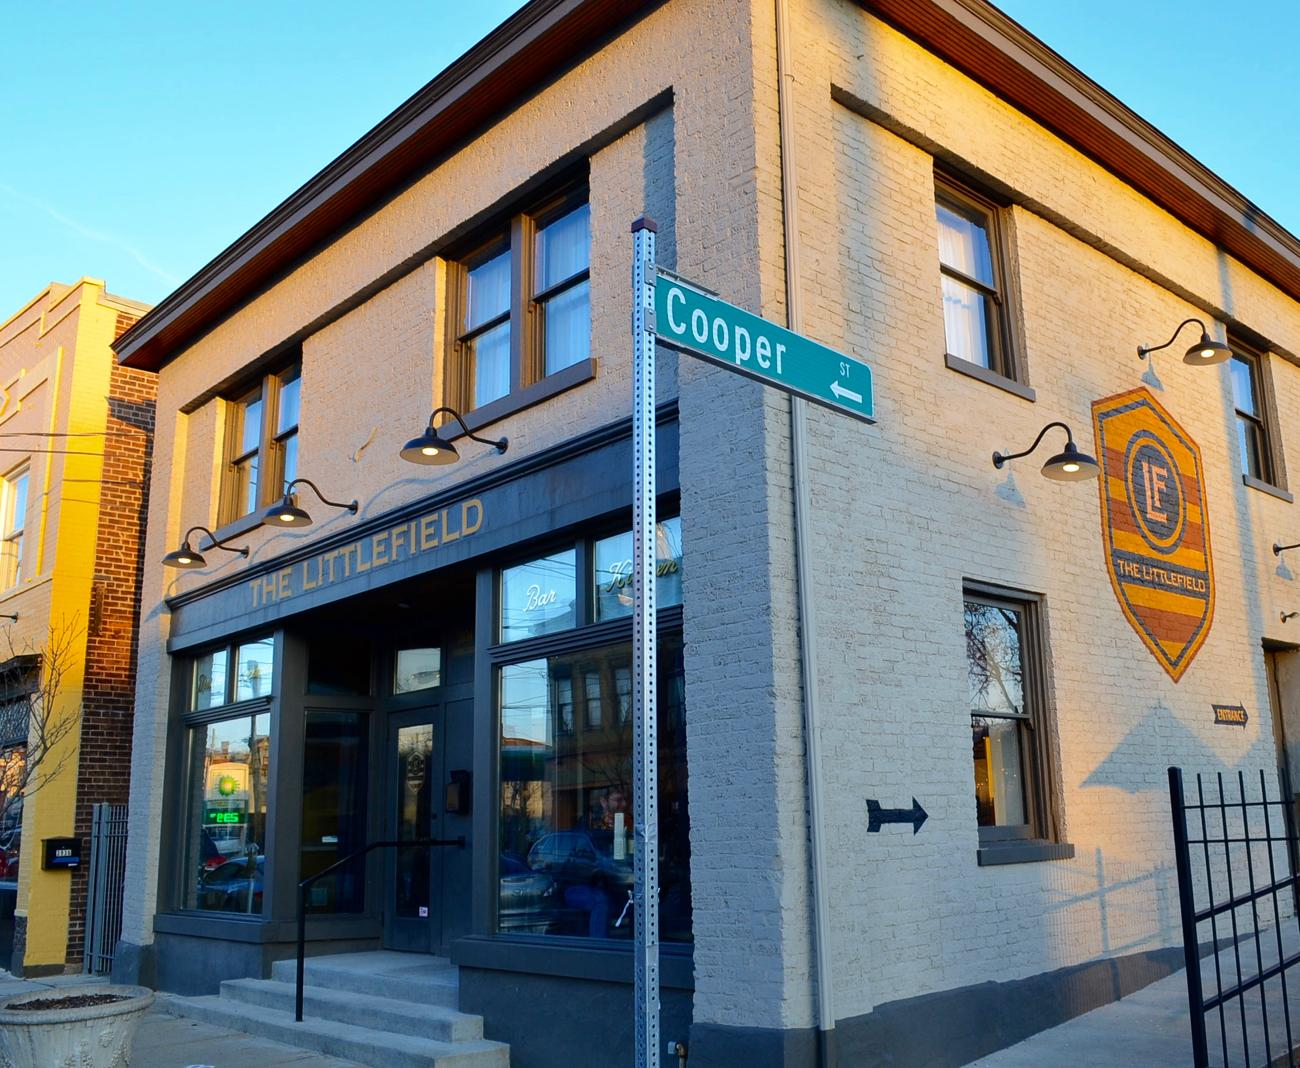 The Littlefield is a bar & restaurant in Northside. ADDRESS: 3934 Spring Grove Ave. 45223 / Image: Leah Zipperstein, Cincinnati Refined // Published: 1.2.17